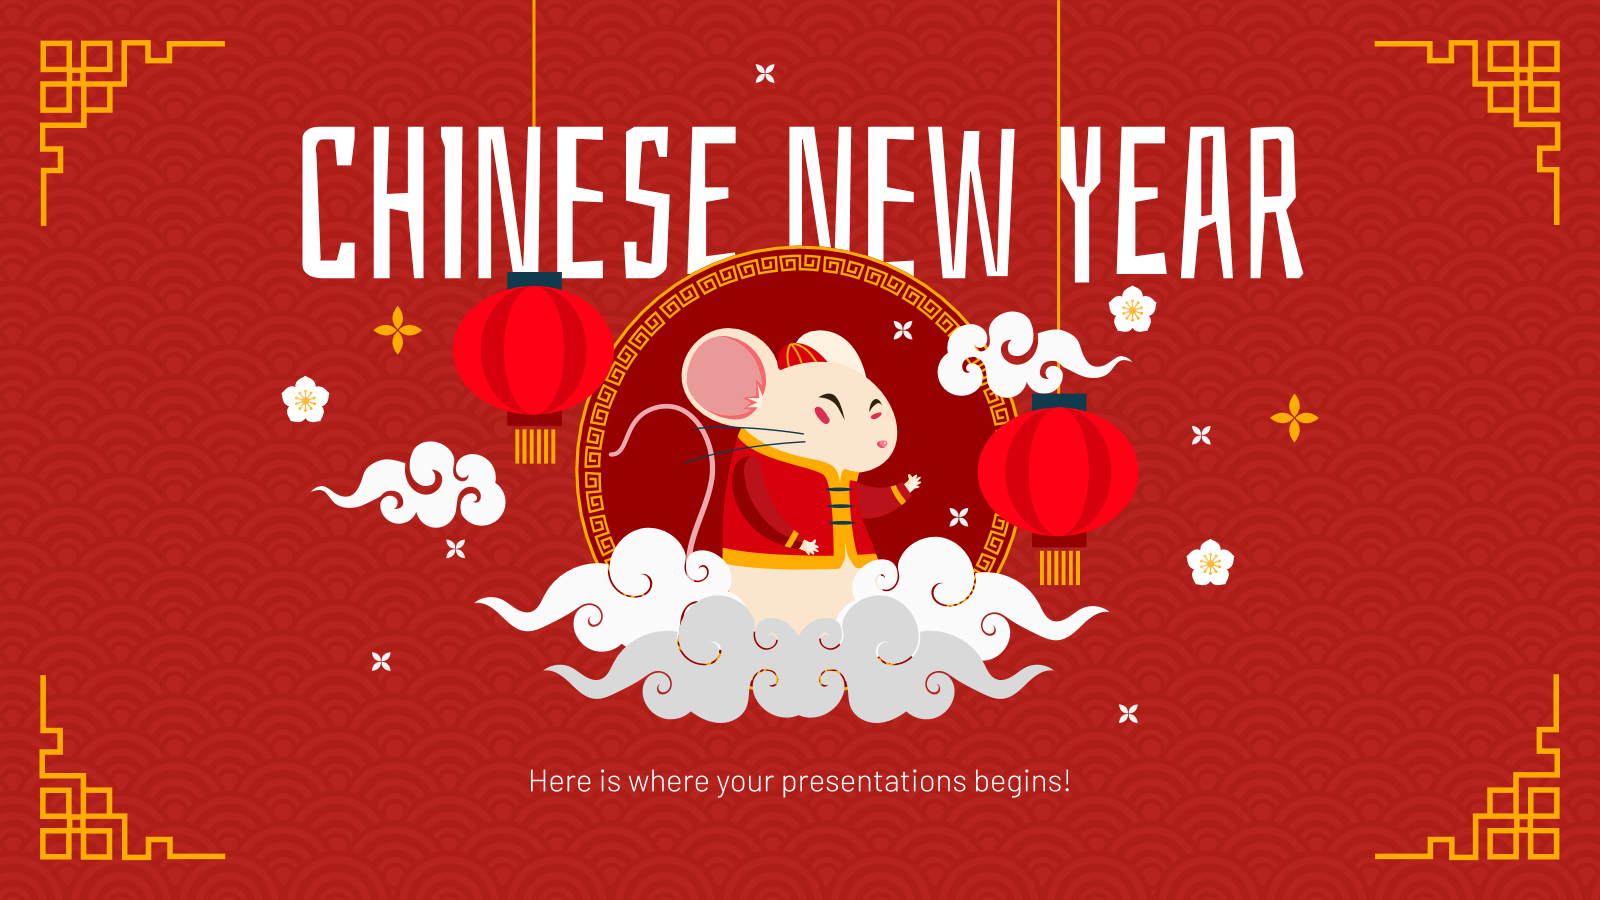 Chinese New Year presentation template